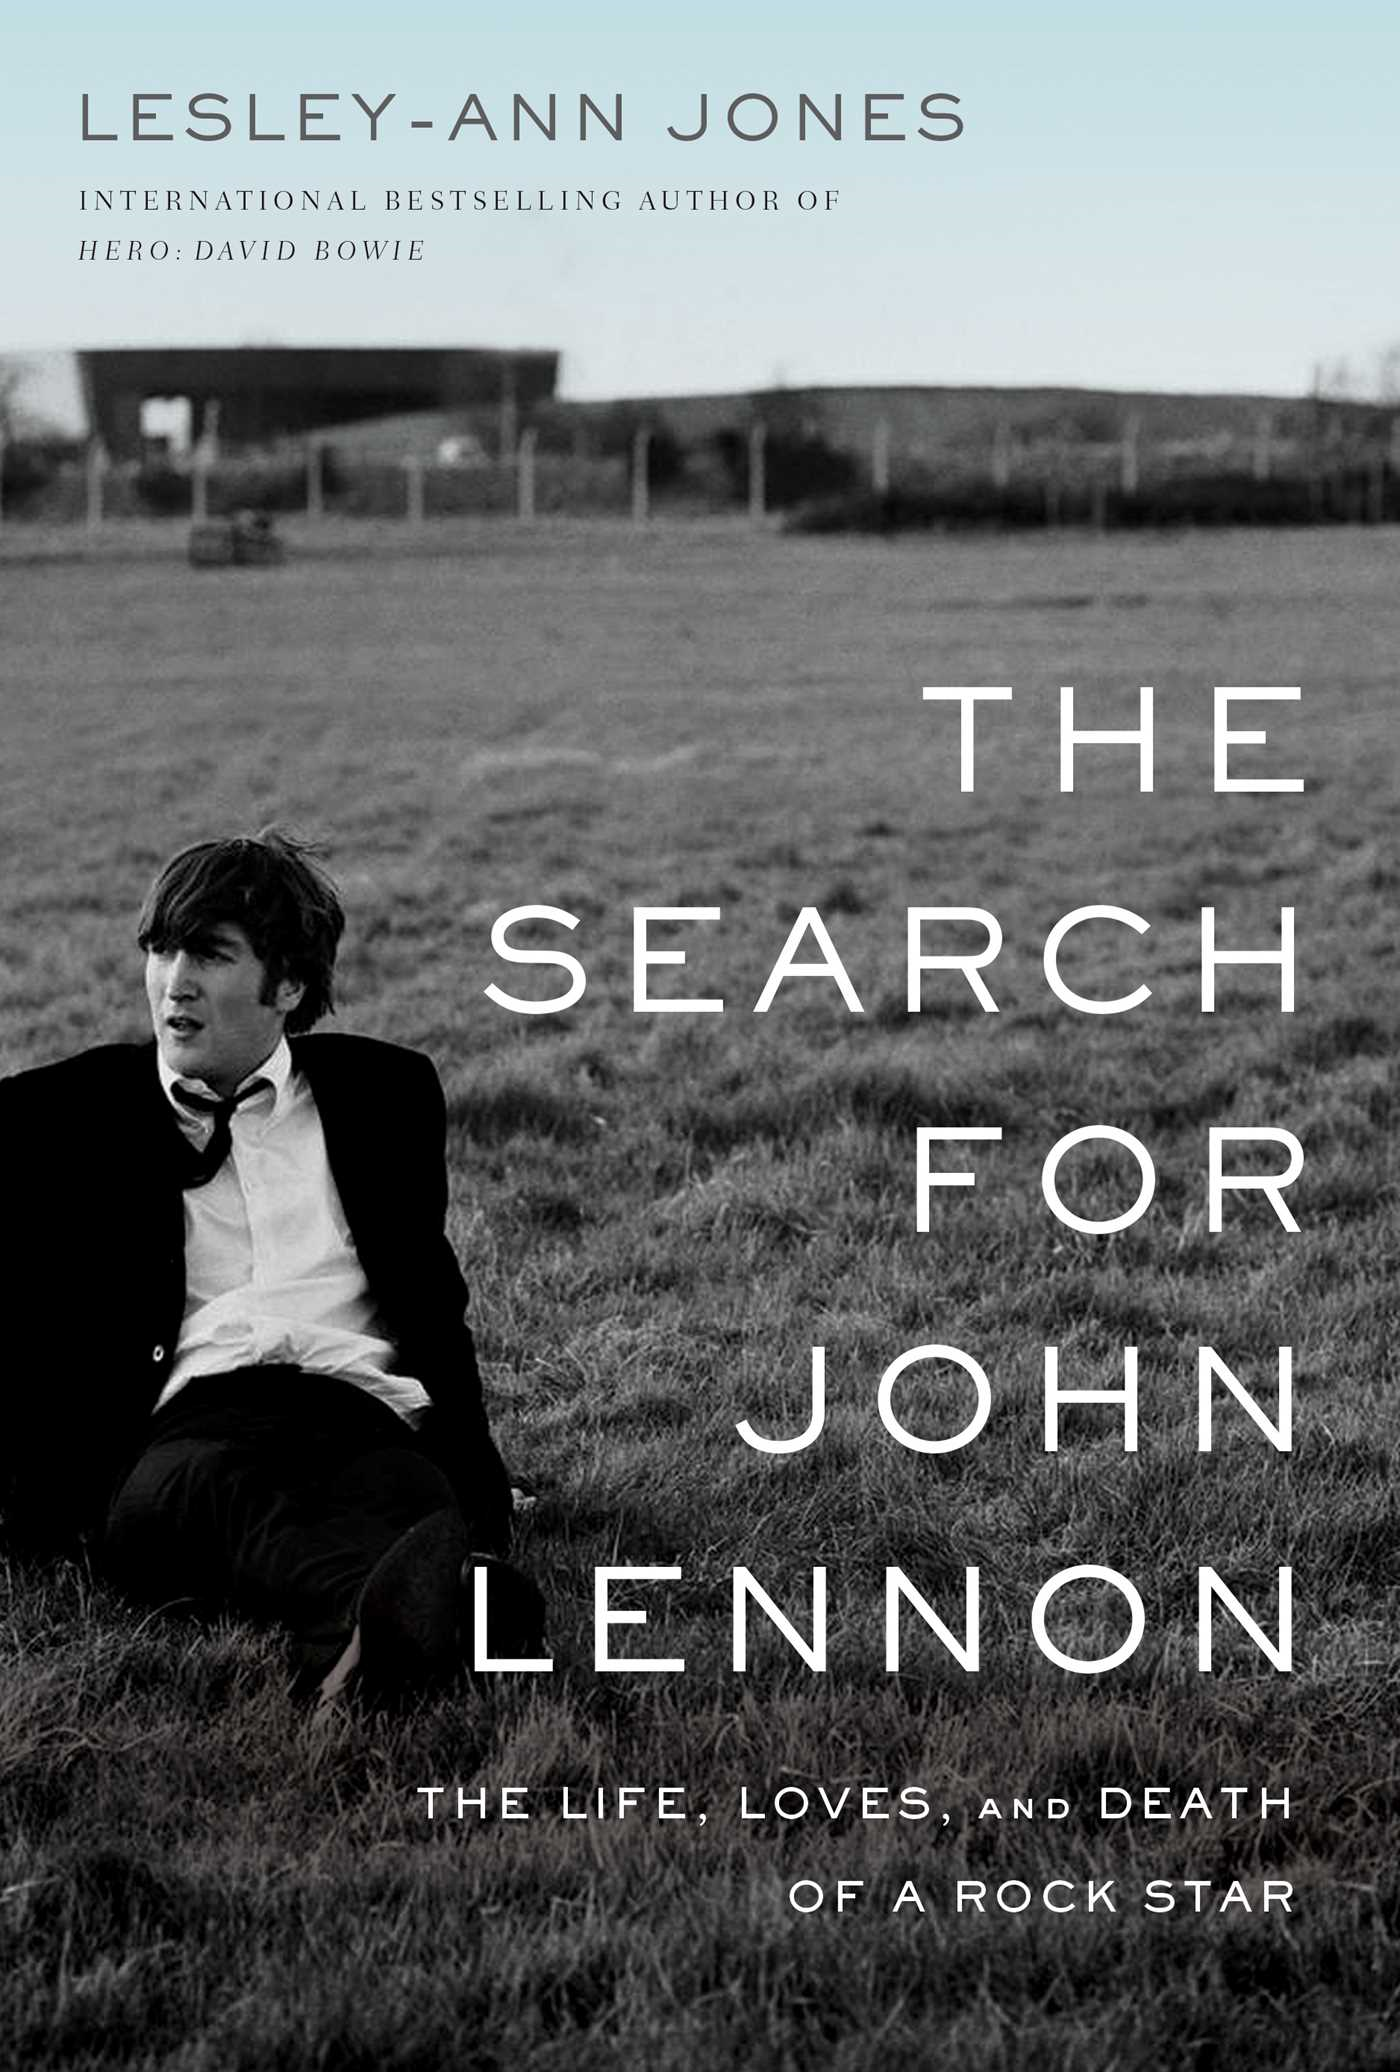 The Search for John Lennon